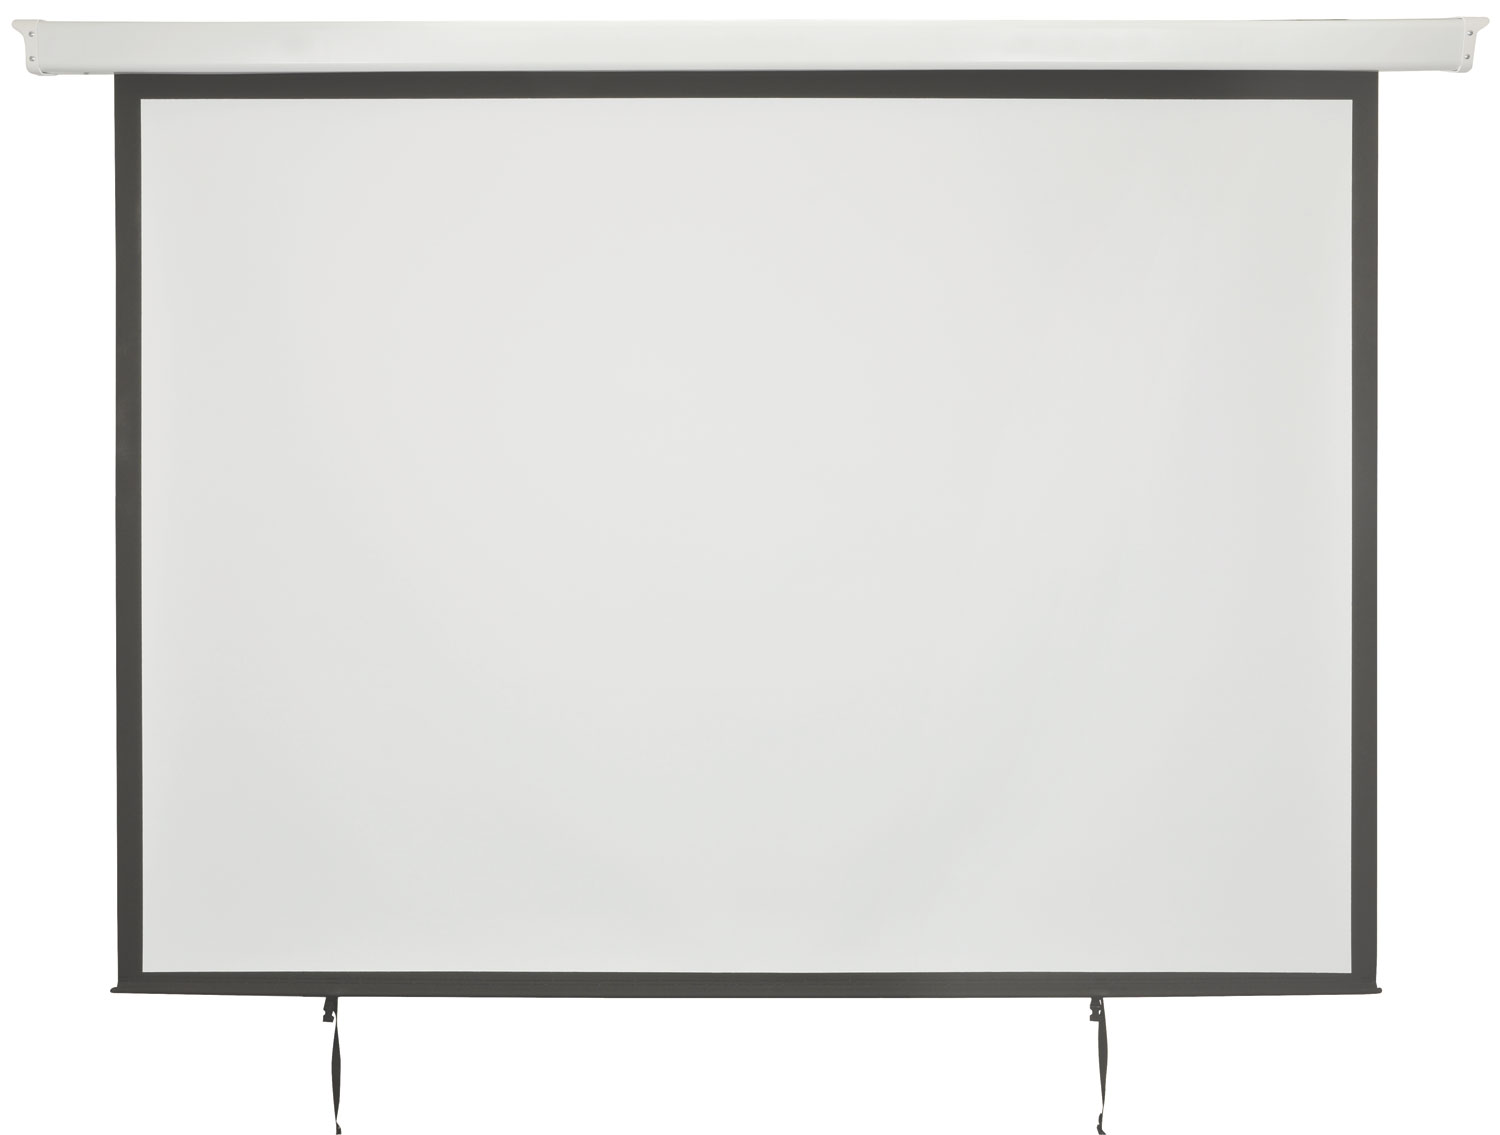 "952321 Motorised 84"" 4:3 Projector Screen with fitted In-line control switch"